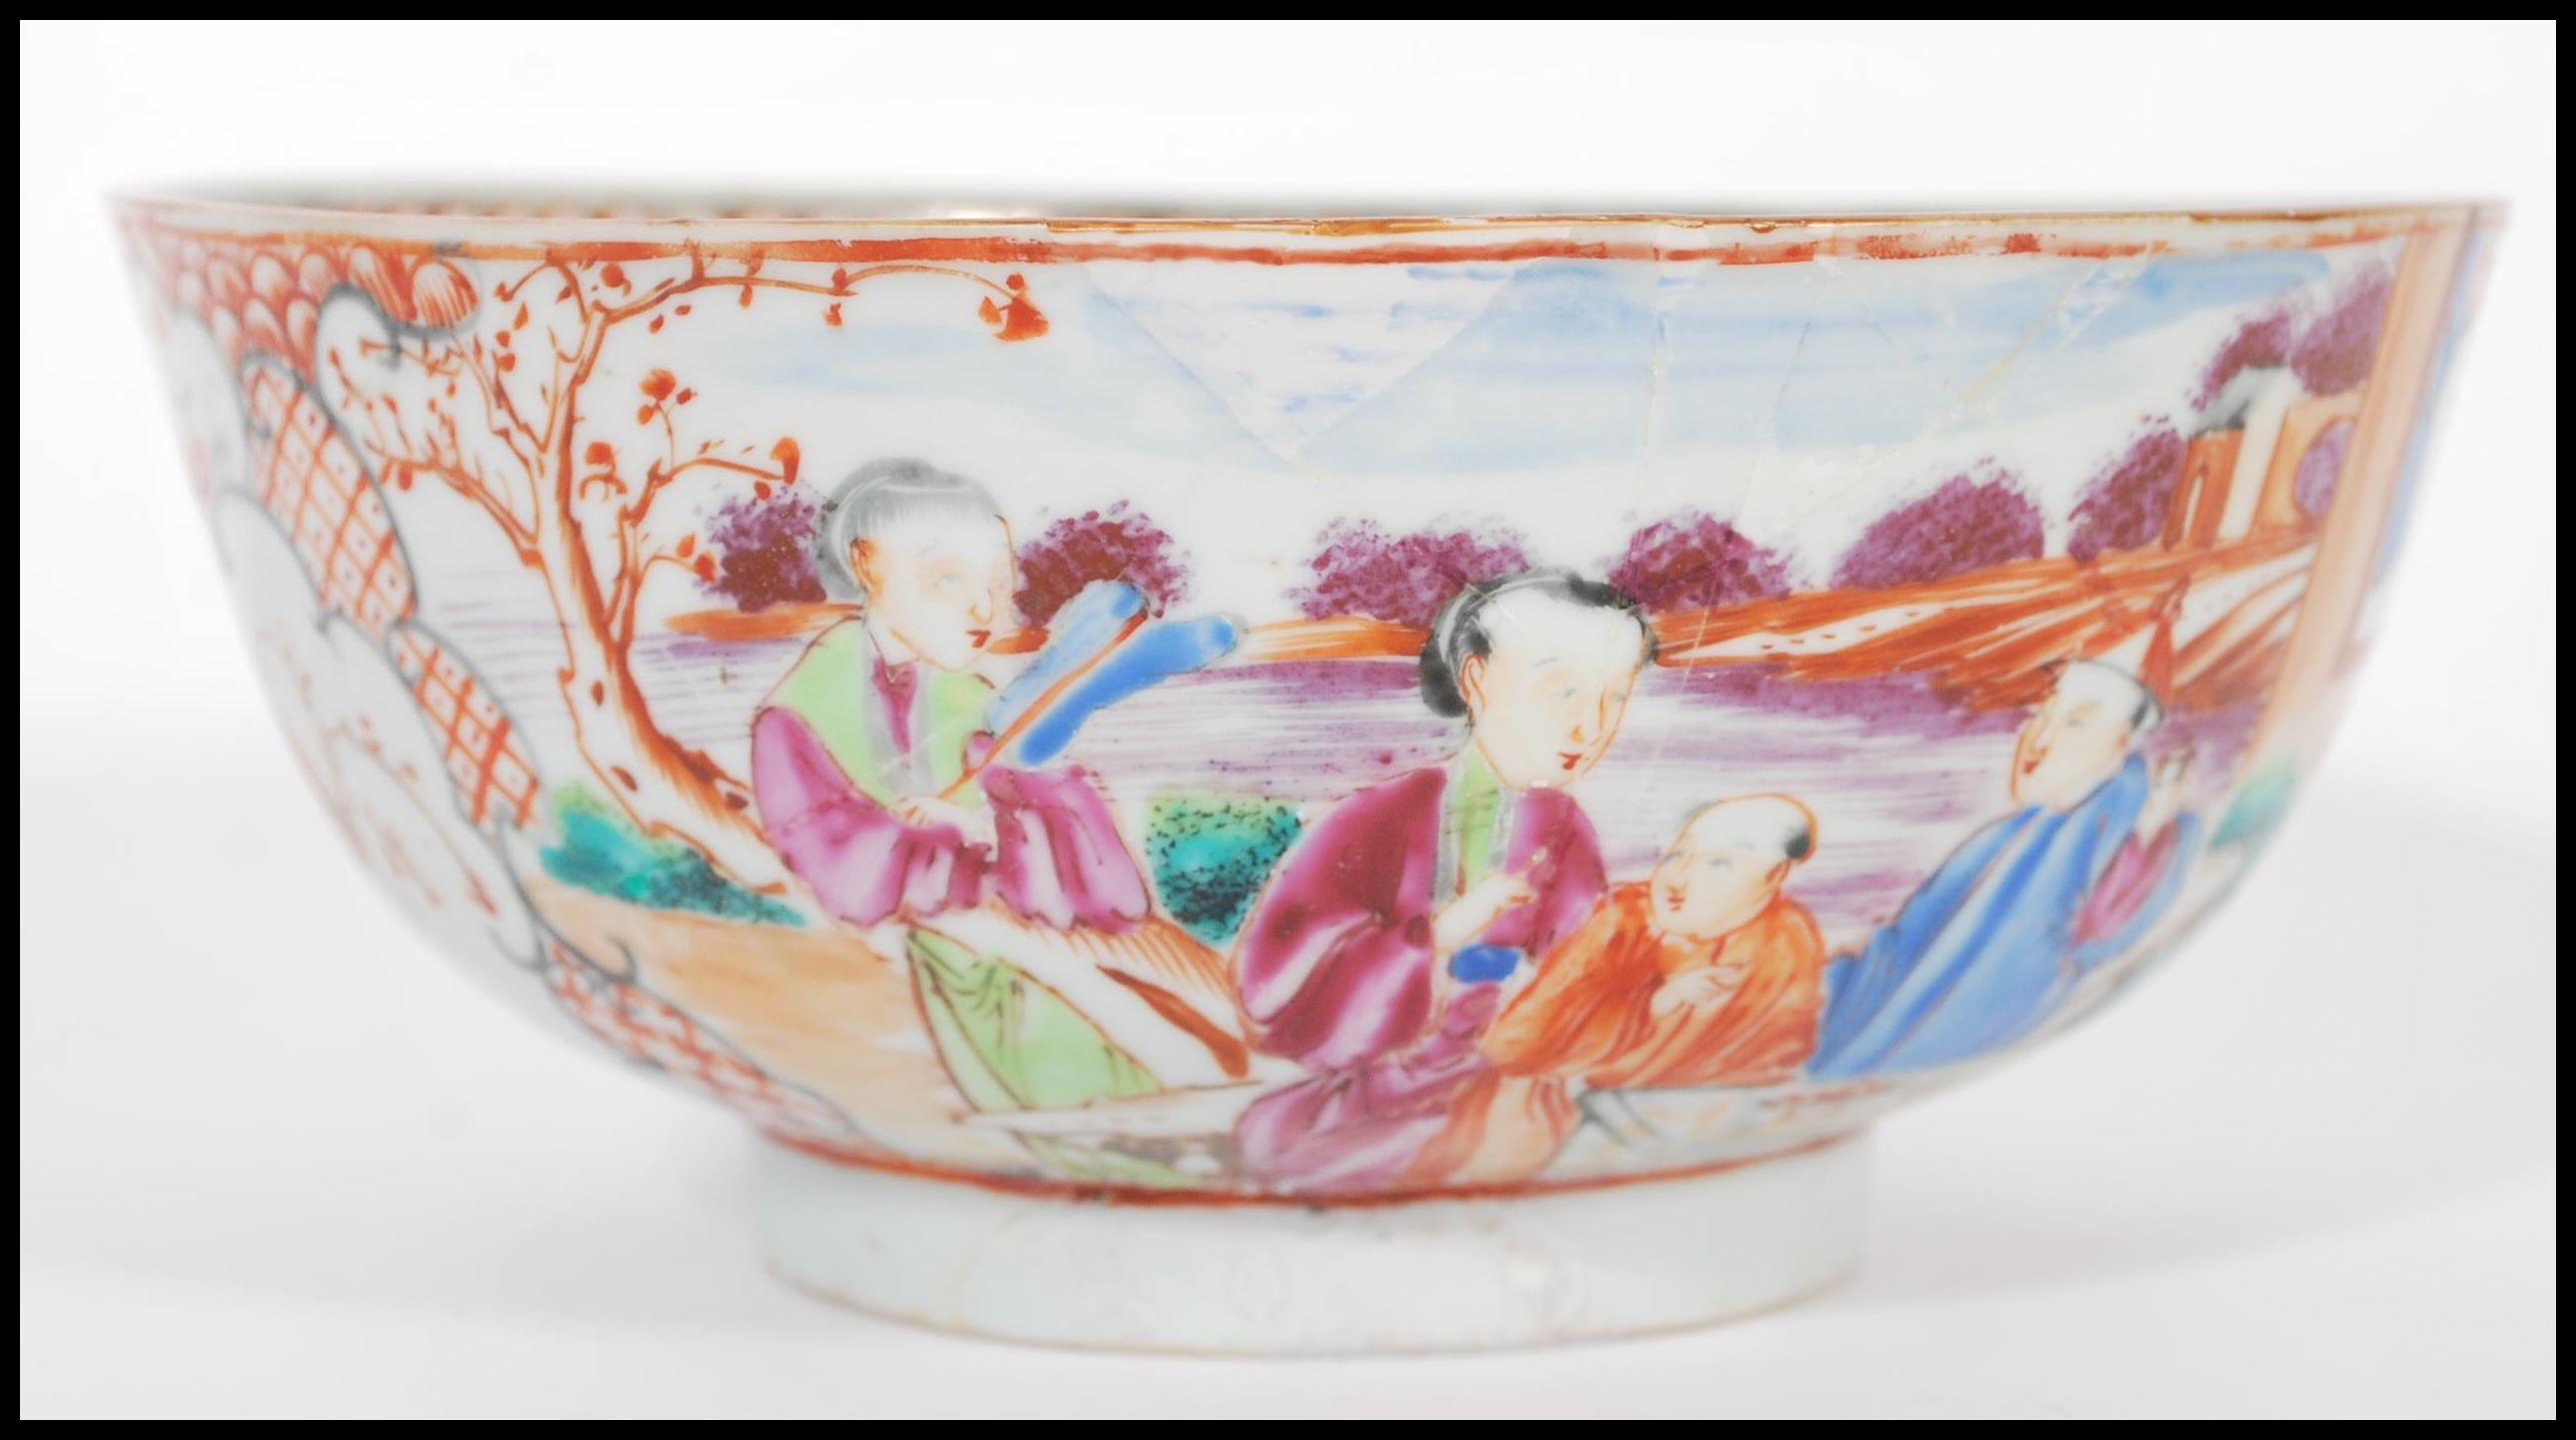 Lot 6 - An 18th Chinese ceramic bowl having hand painting white cartouche panels depicting birds and trees